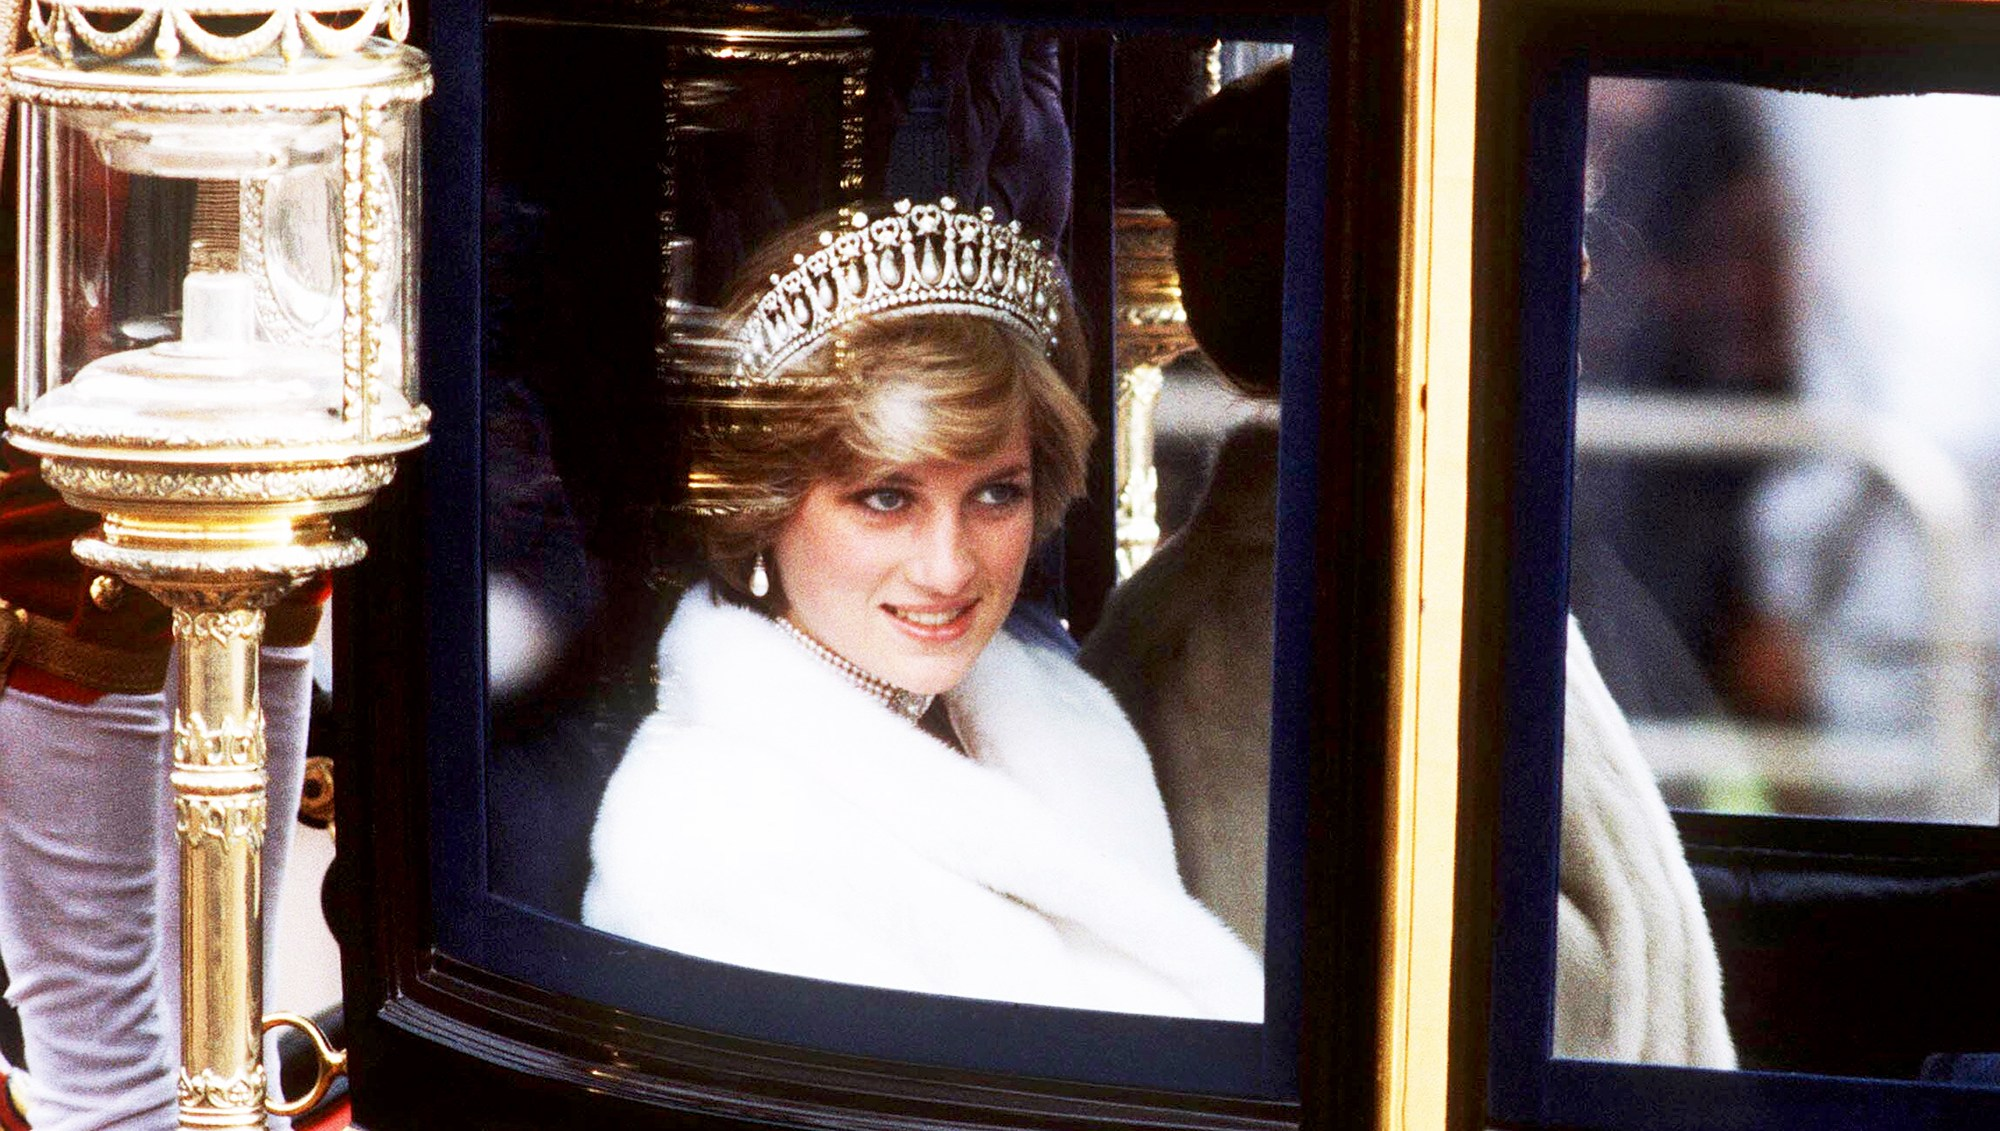 Princess Diana on her way to the State Opening of Parliament in November 1981 in London, England.